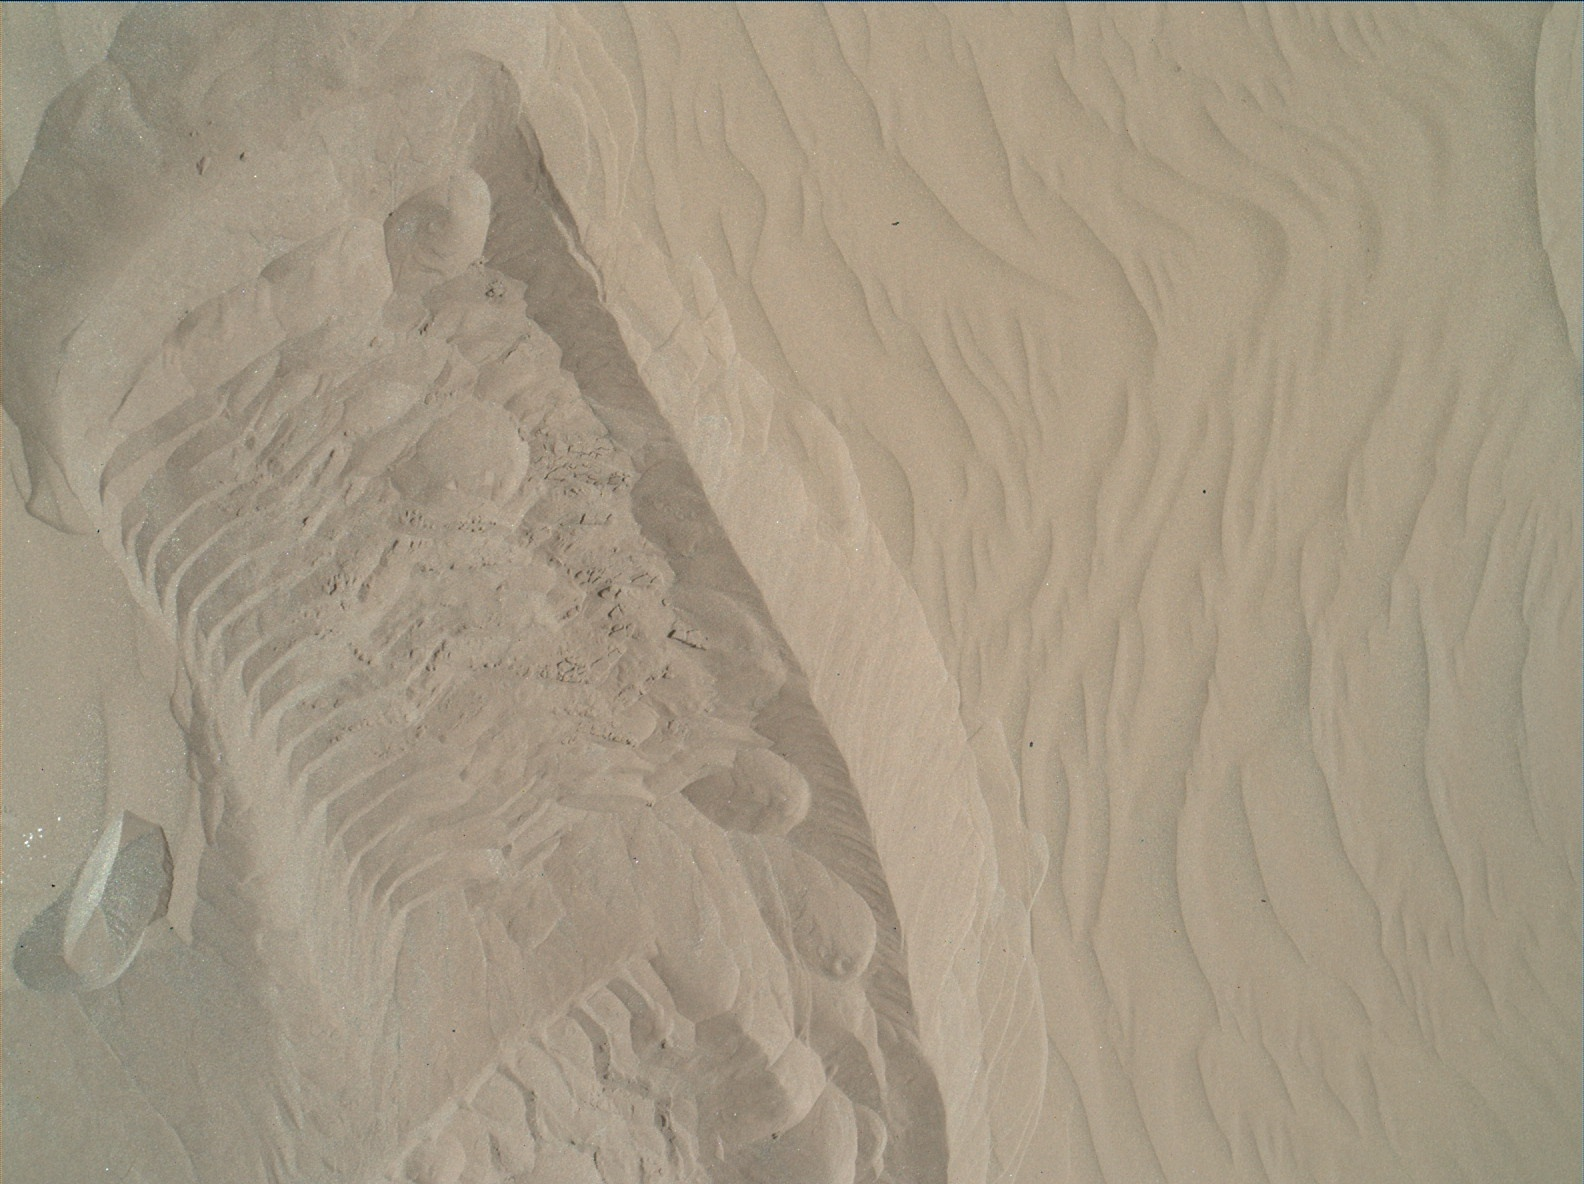 Nasa's Mars rover Curiosity acquired this image using its Mars Hand Lens Imager (MAHLI) on Sol 1228